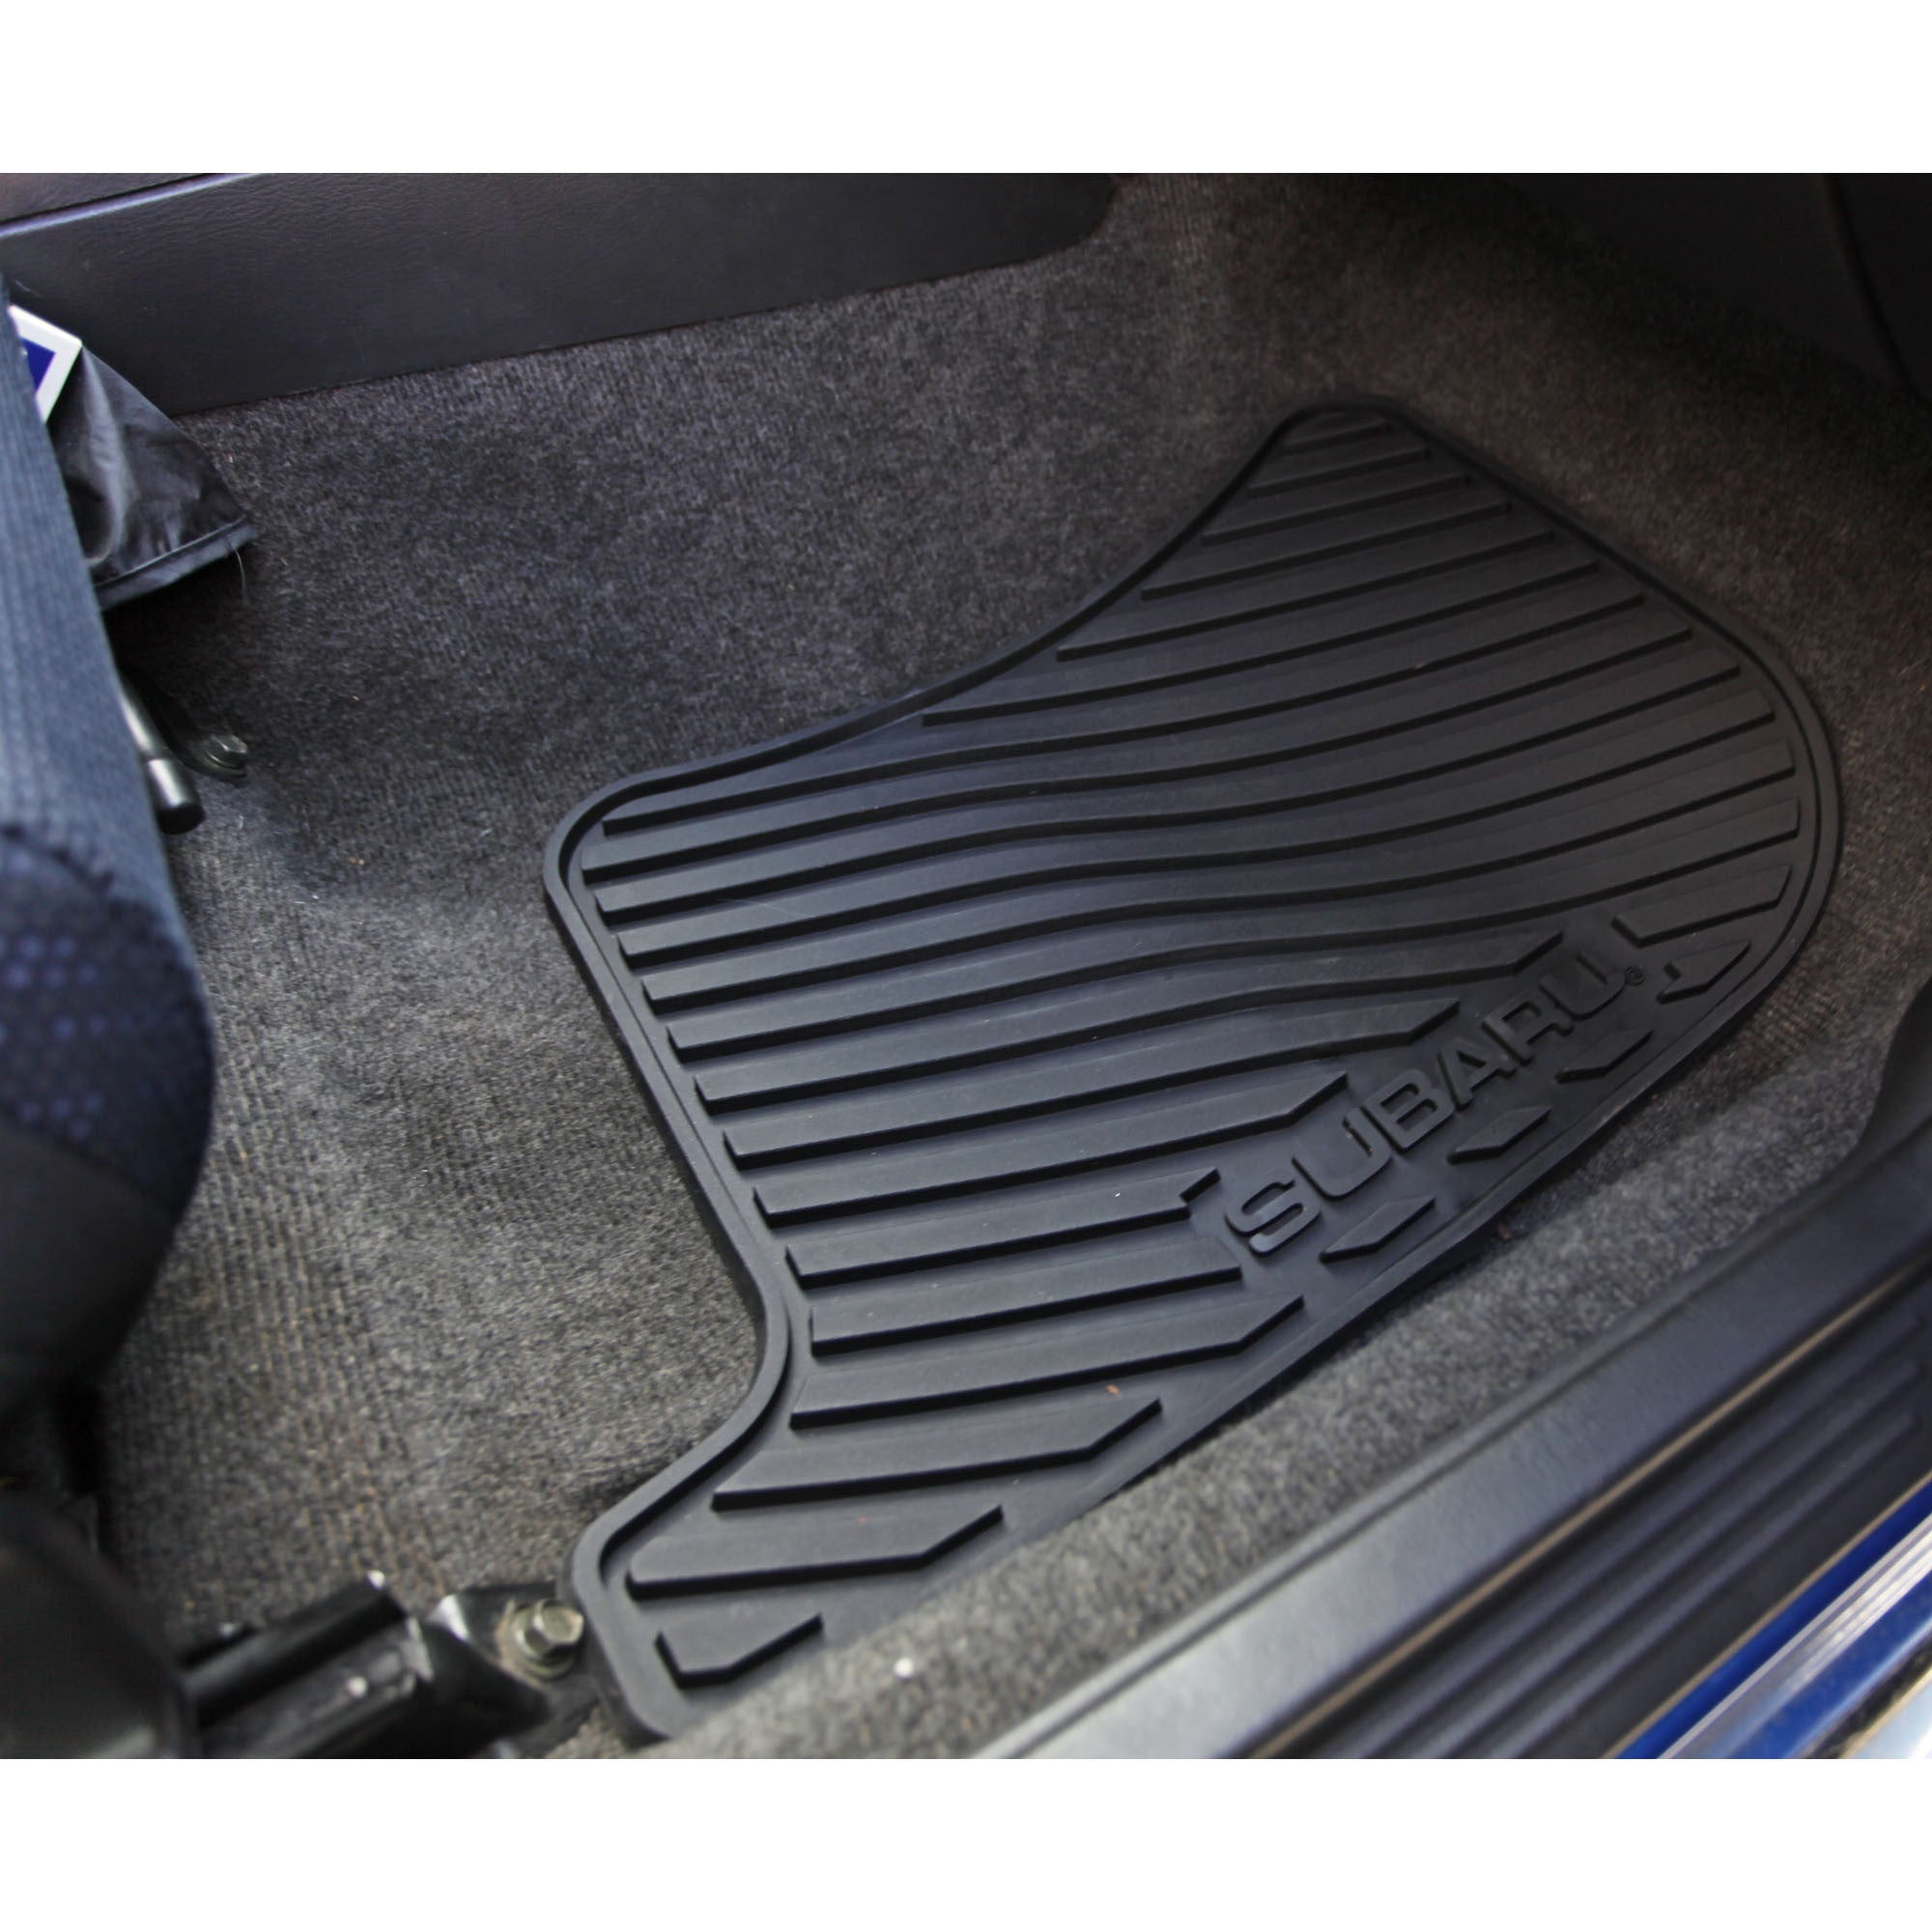 Rubber floor mats cheap - Subaru Oem All Weather Rubber Floor Mats 2002 2007 Impreza Wrx Sti